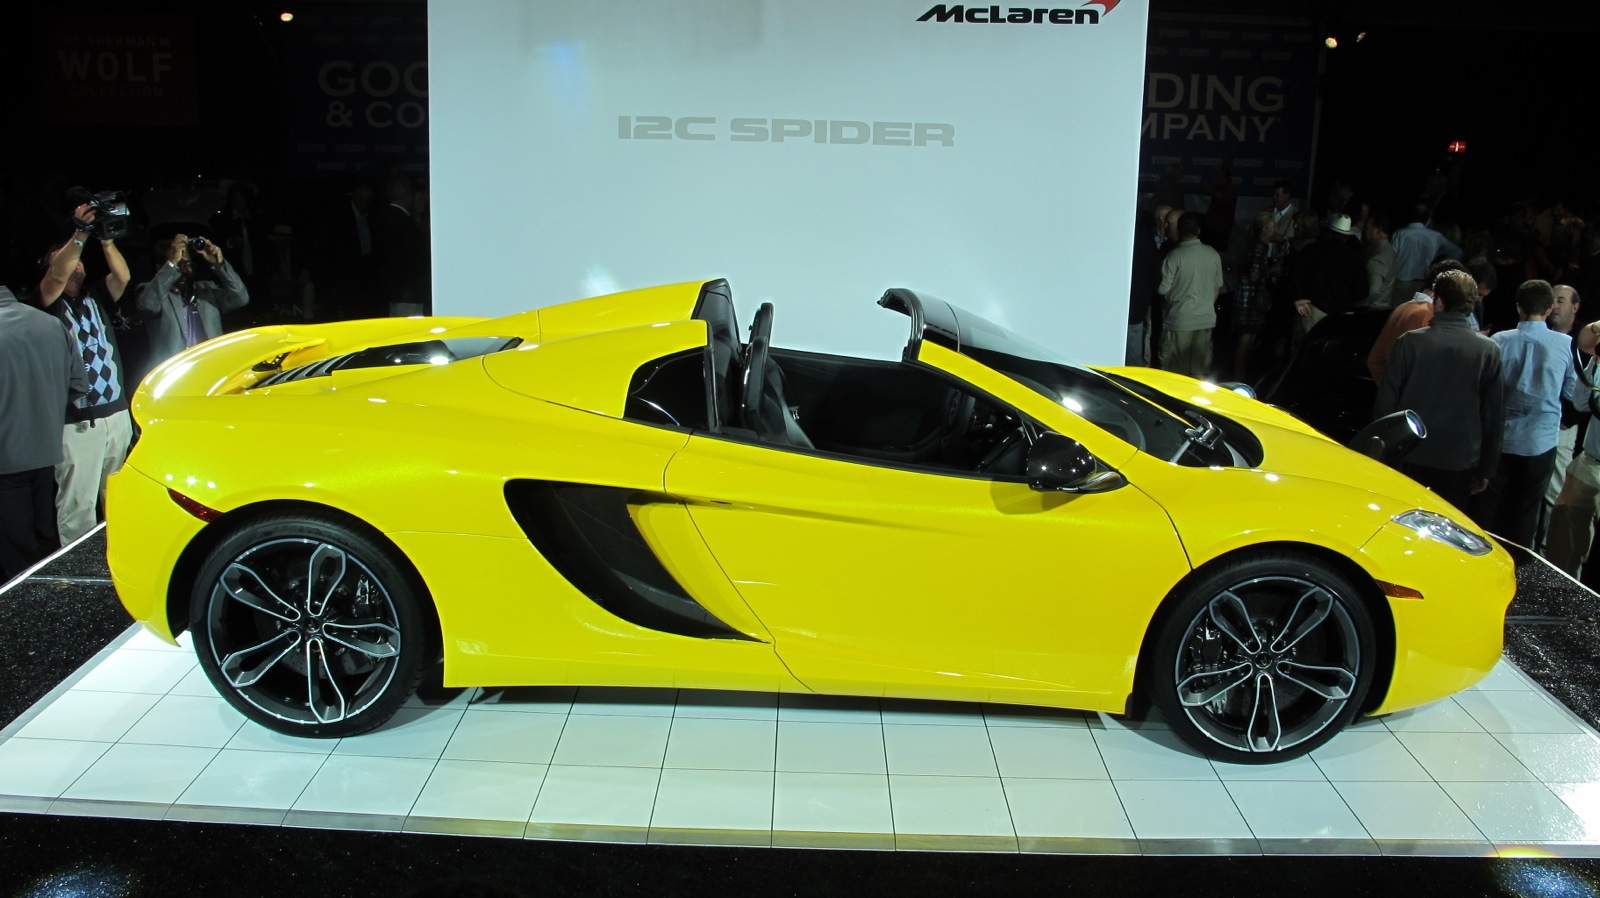 See The McLaren 12C Spider Live At Pebble Beach - Jalopnik